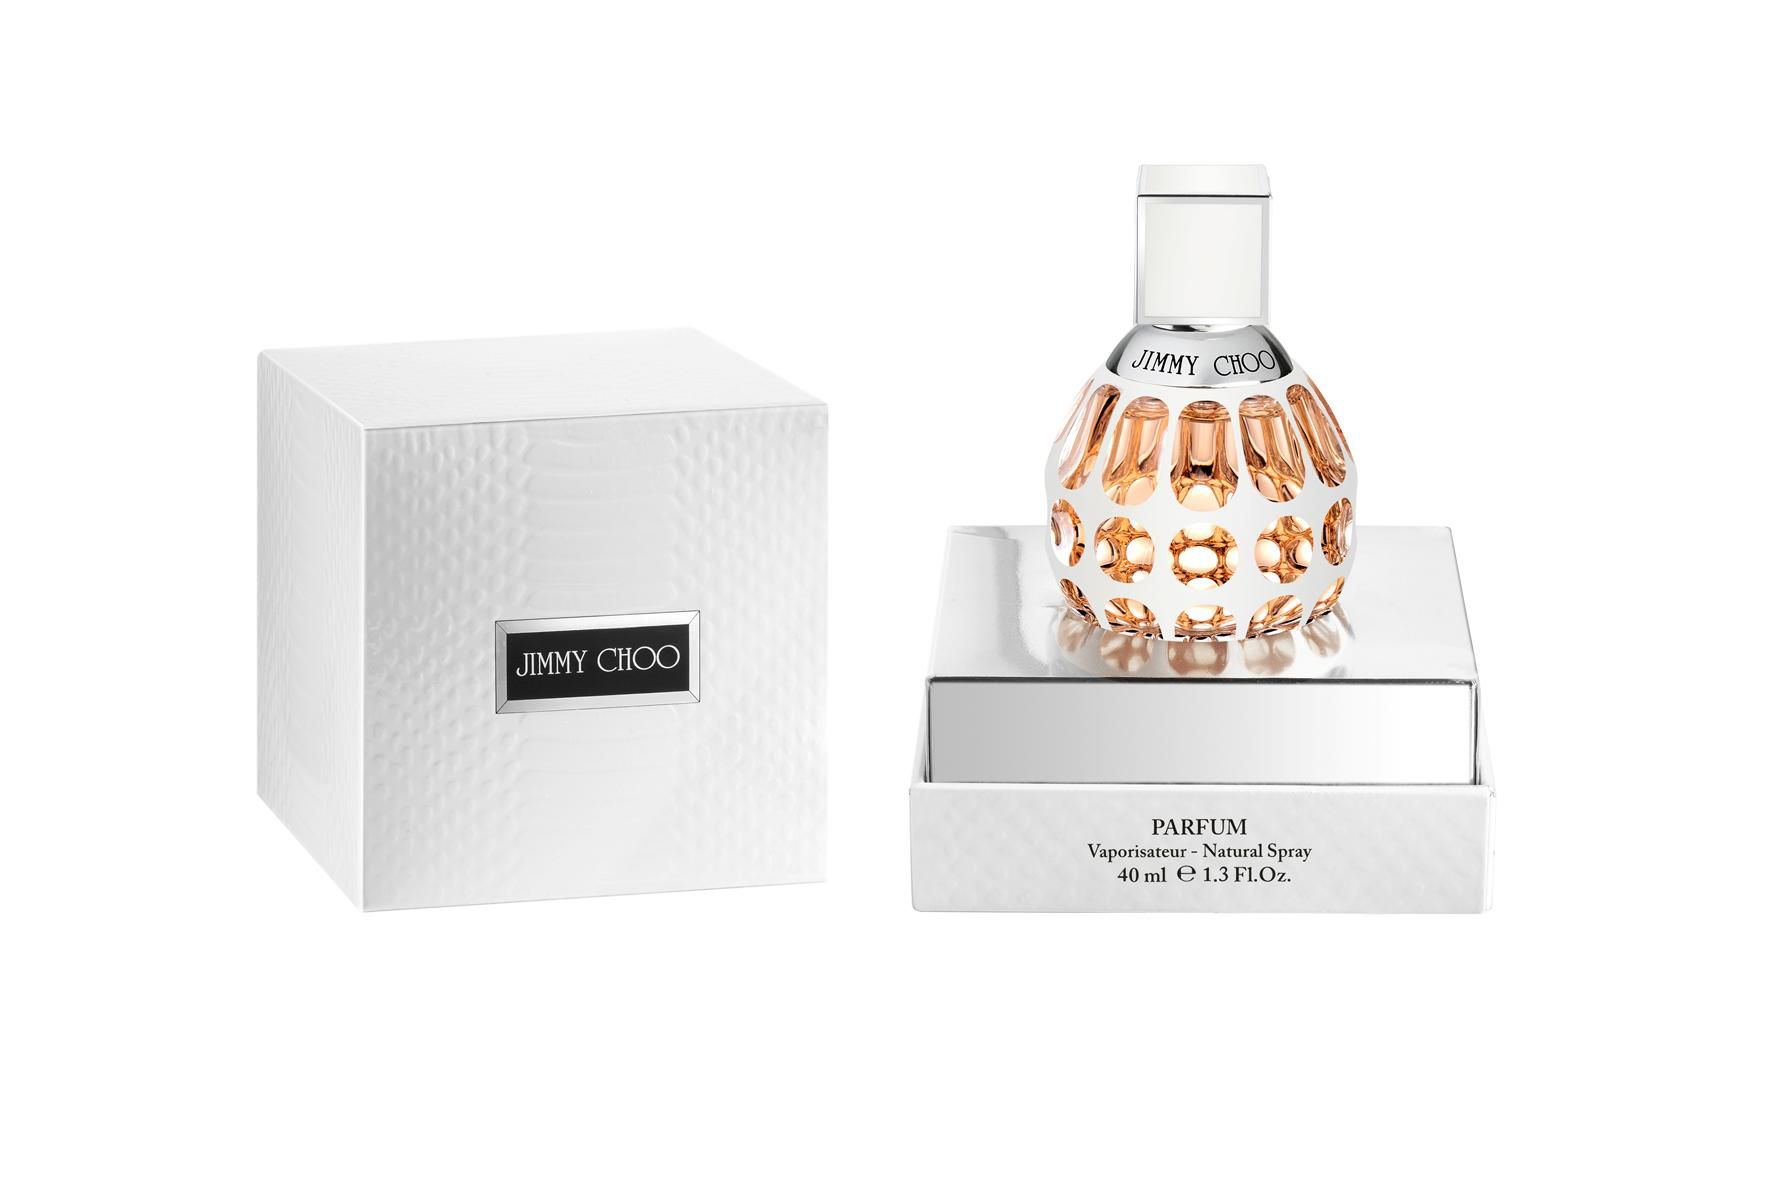 Parfum Limited Edition 40ml